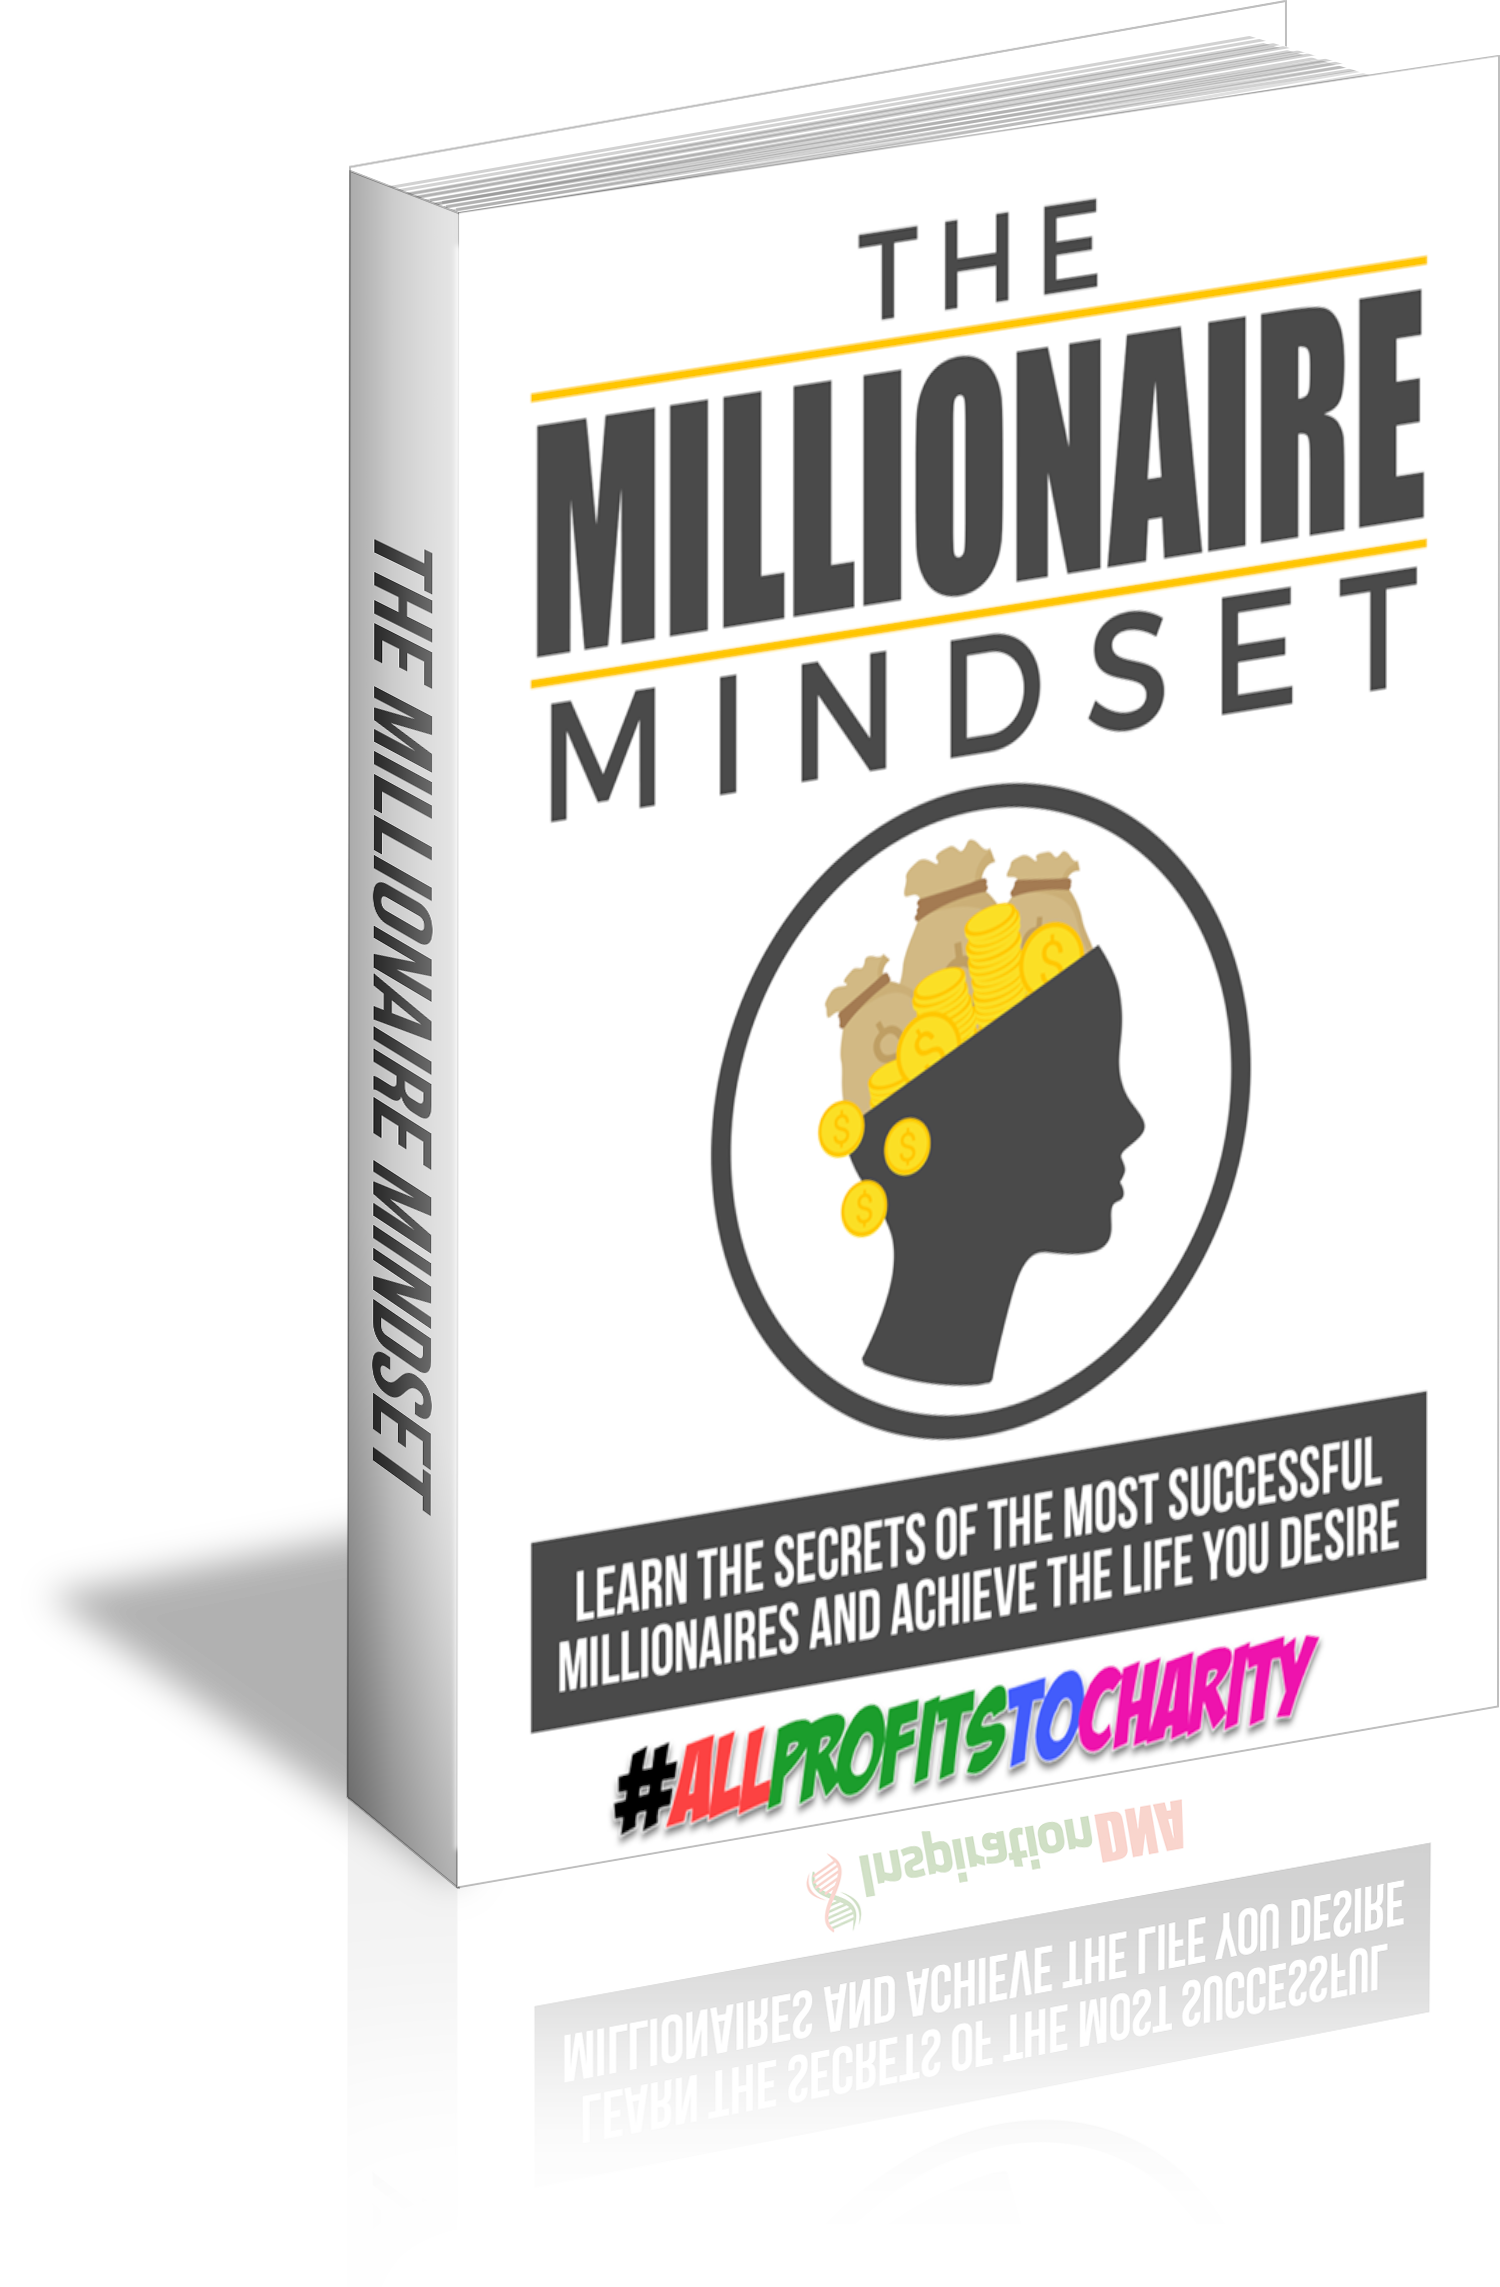 The Millionaire Mindset cover